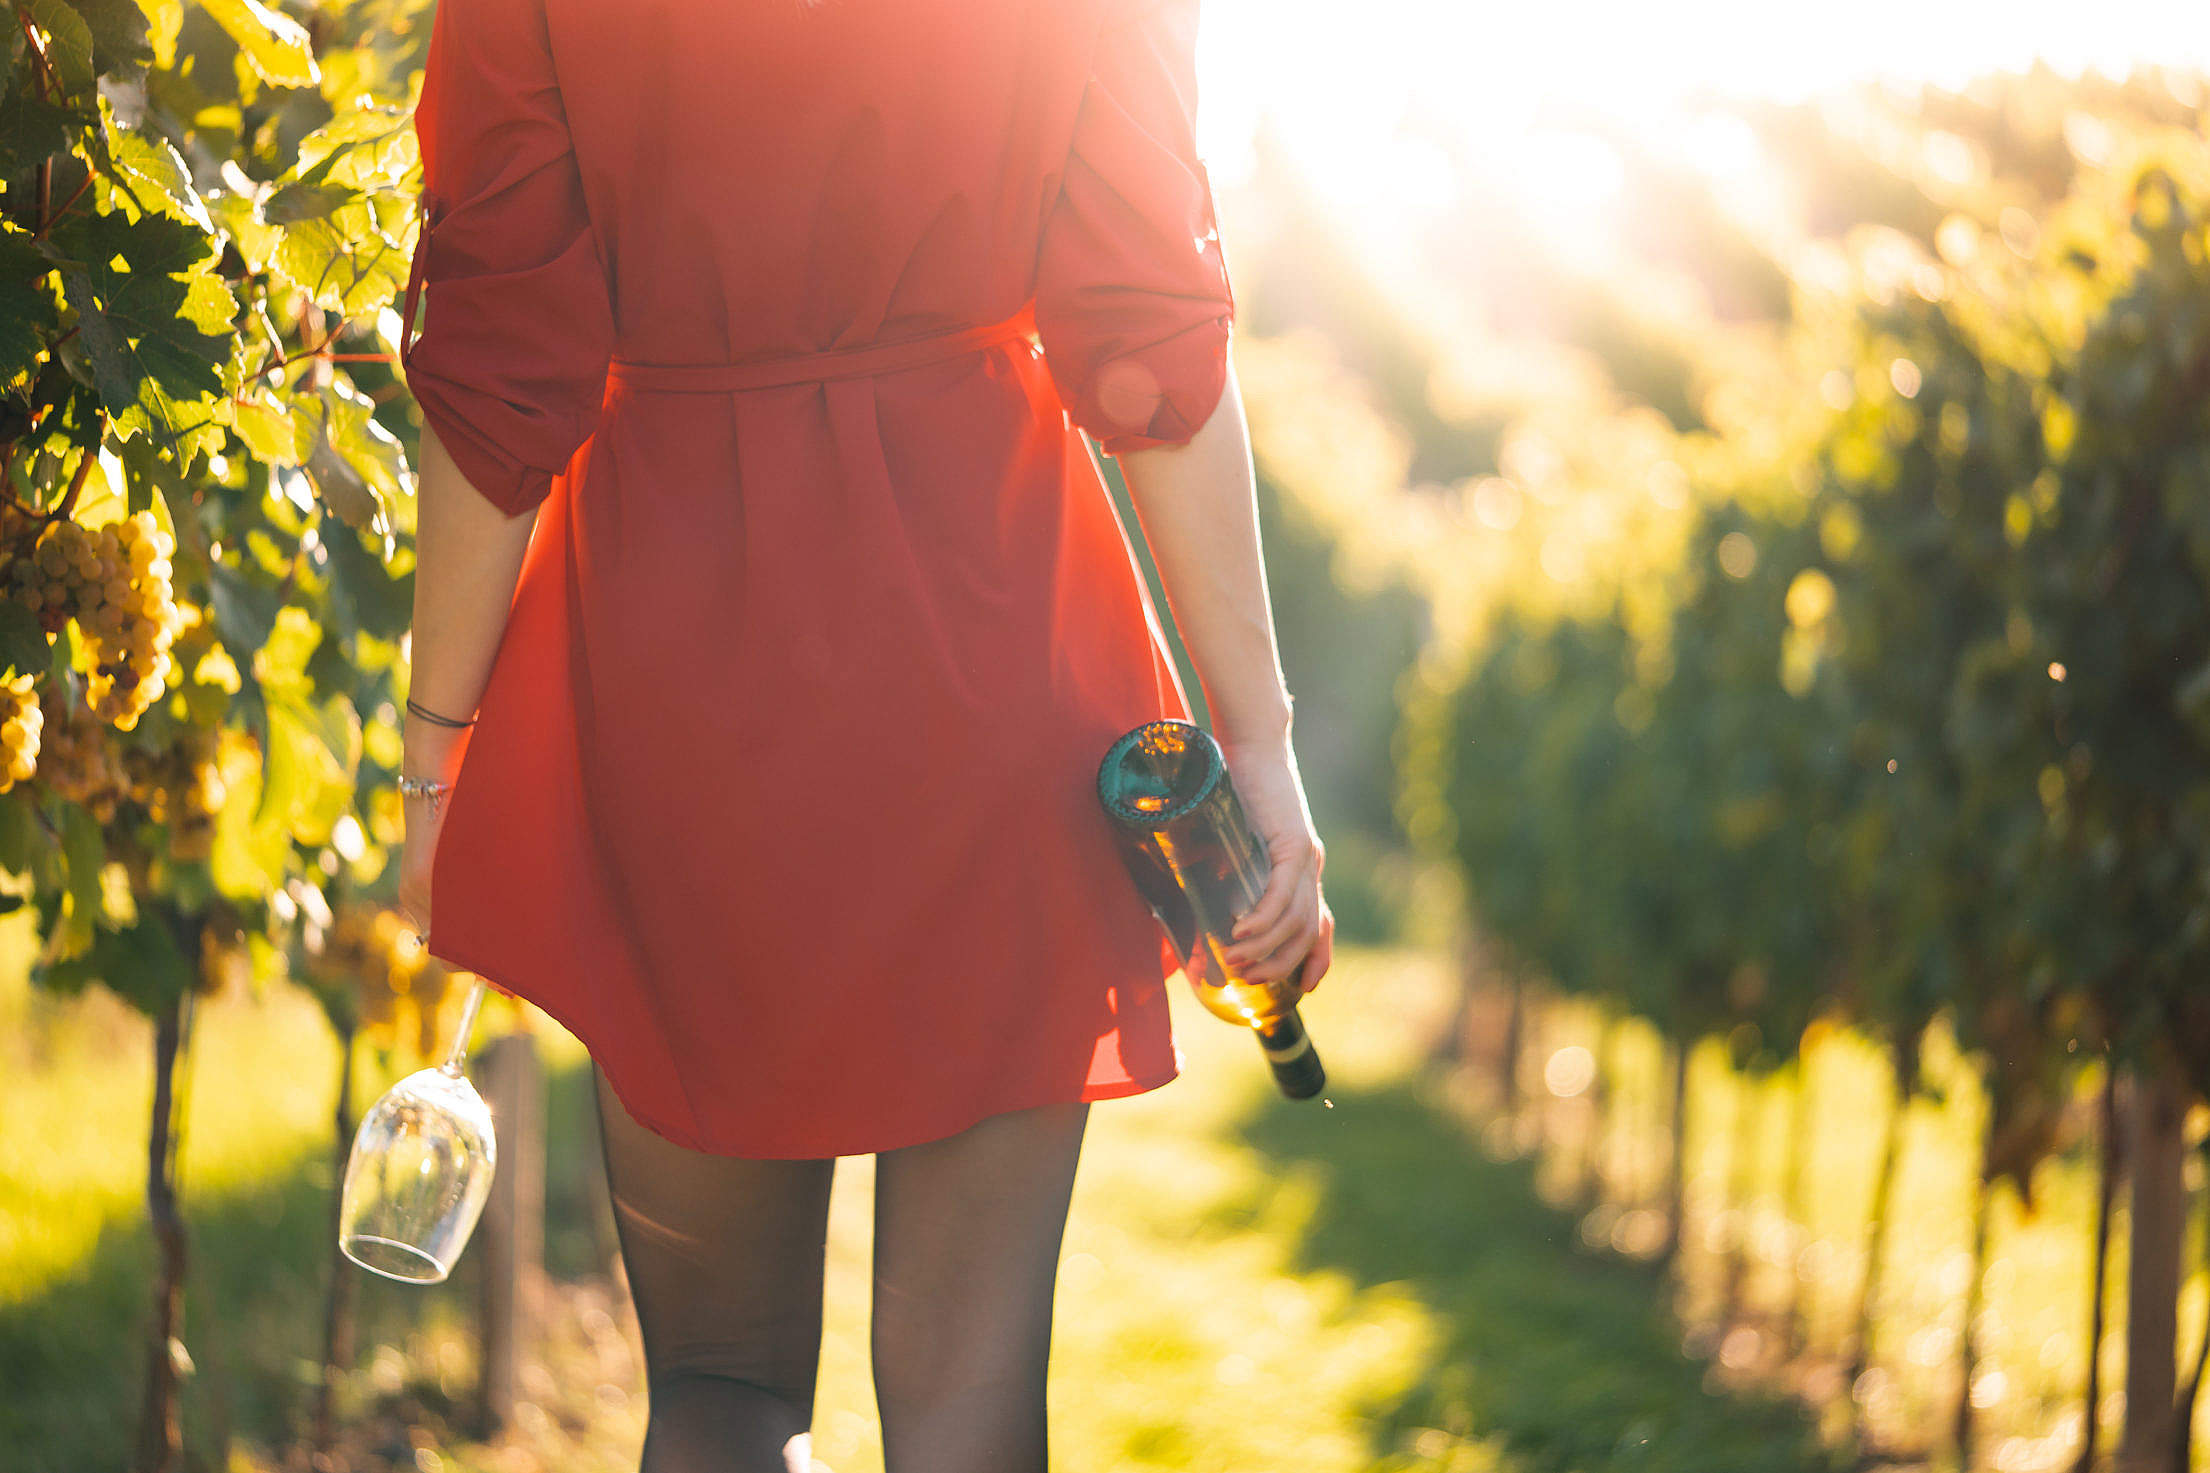 Woman in Red Dress Walking in a Vineyard Free Photo